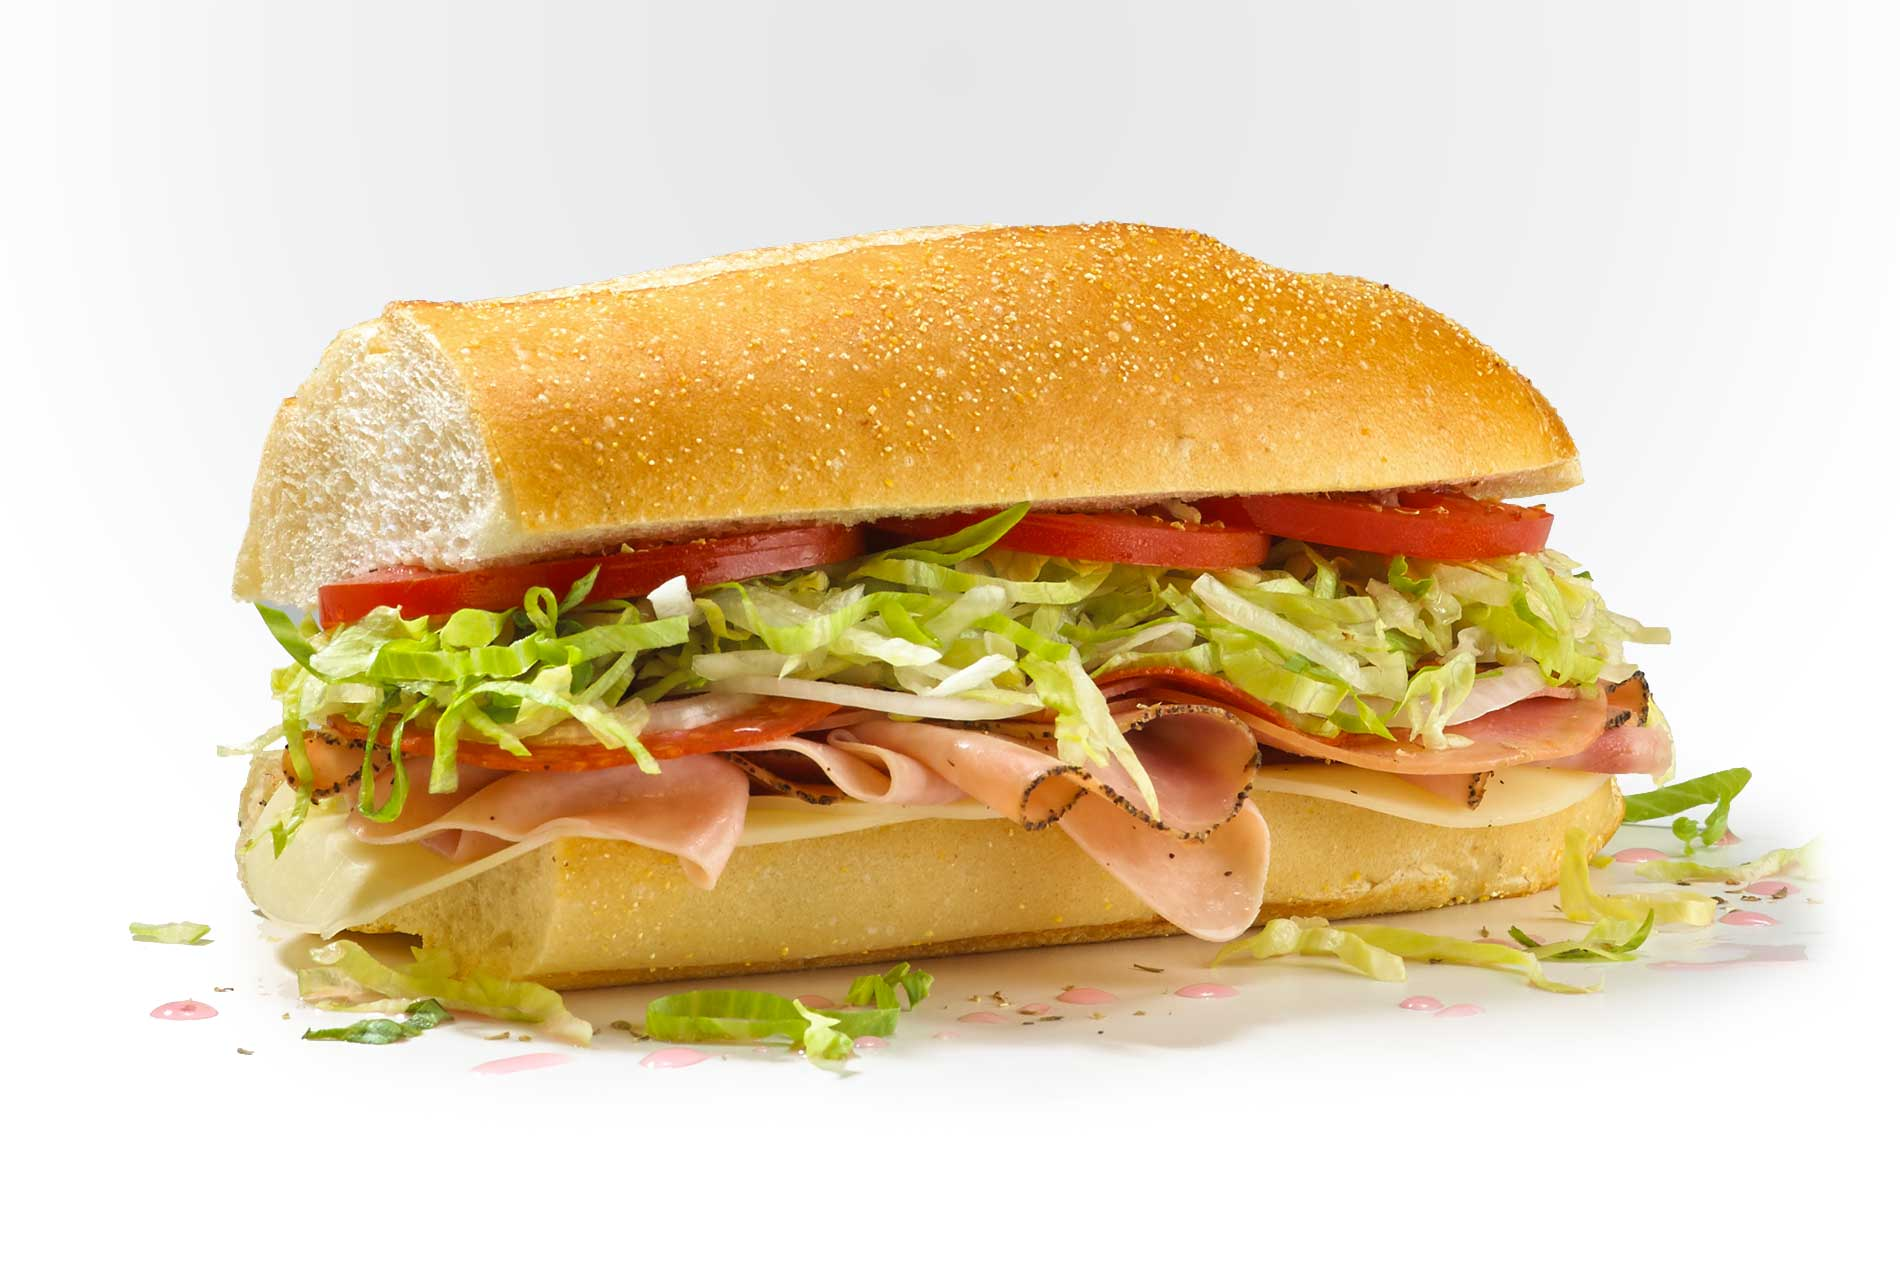 #13 The Original Italian - Cold Subs